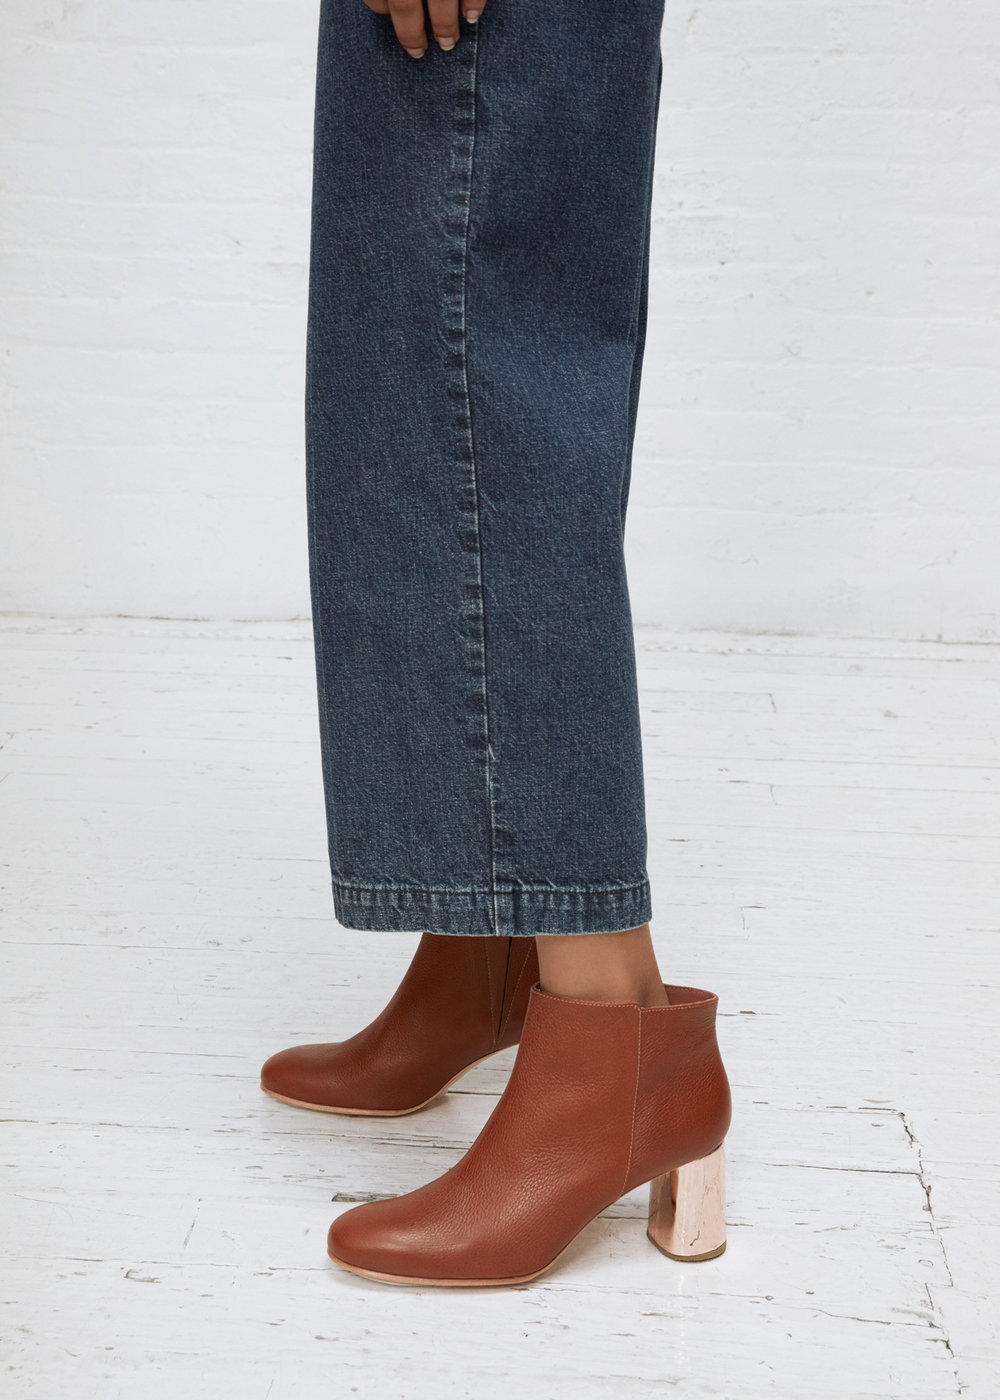 Rachel Comey Lin Booties. Available in two colors. Shopbop. $448.